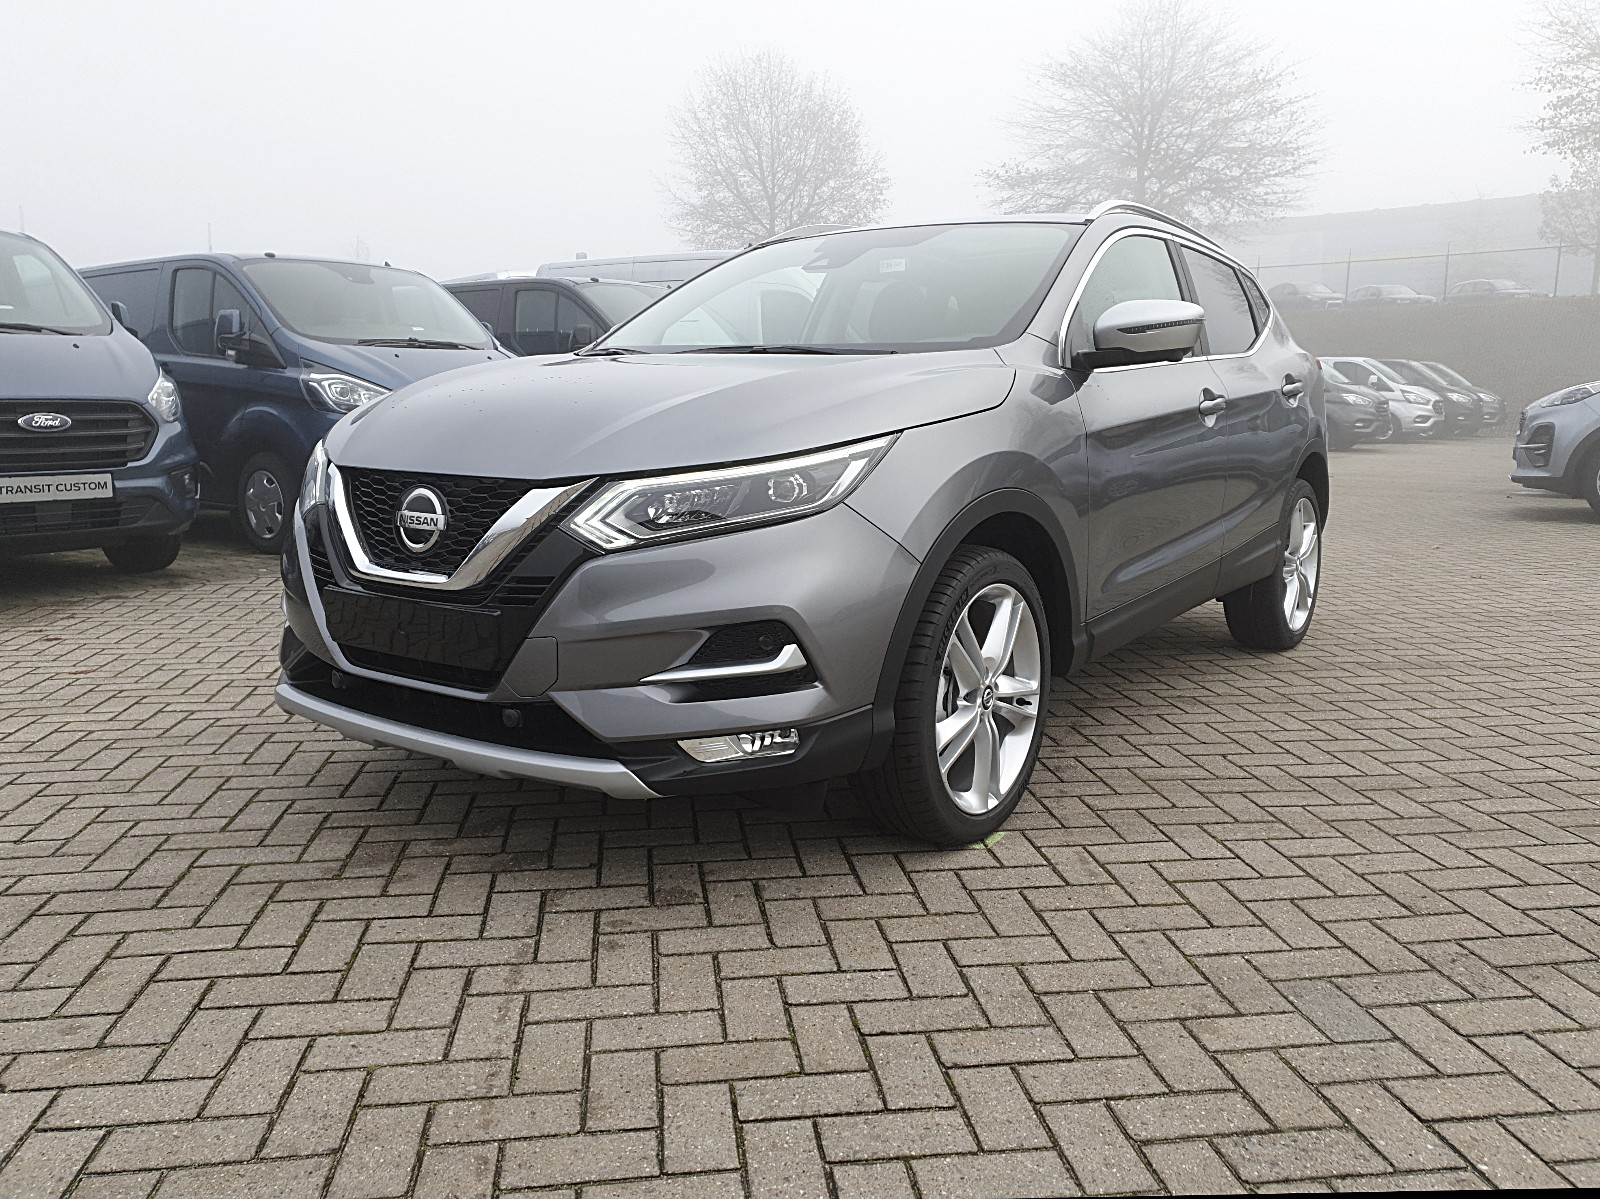 NISSAN QASHQAI 1.3 DIG-T 140PS Tekna Voll-LED 19''LM AroundViewMonitor Navi Gla Autosoft BV, Enschede